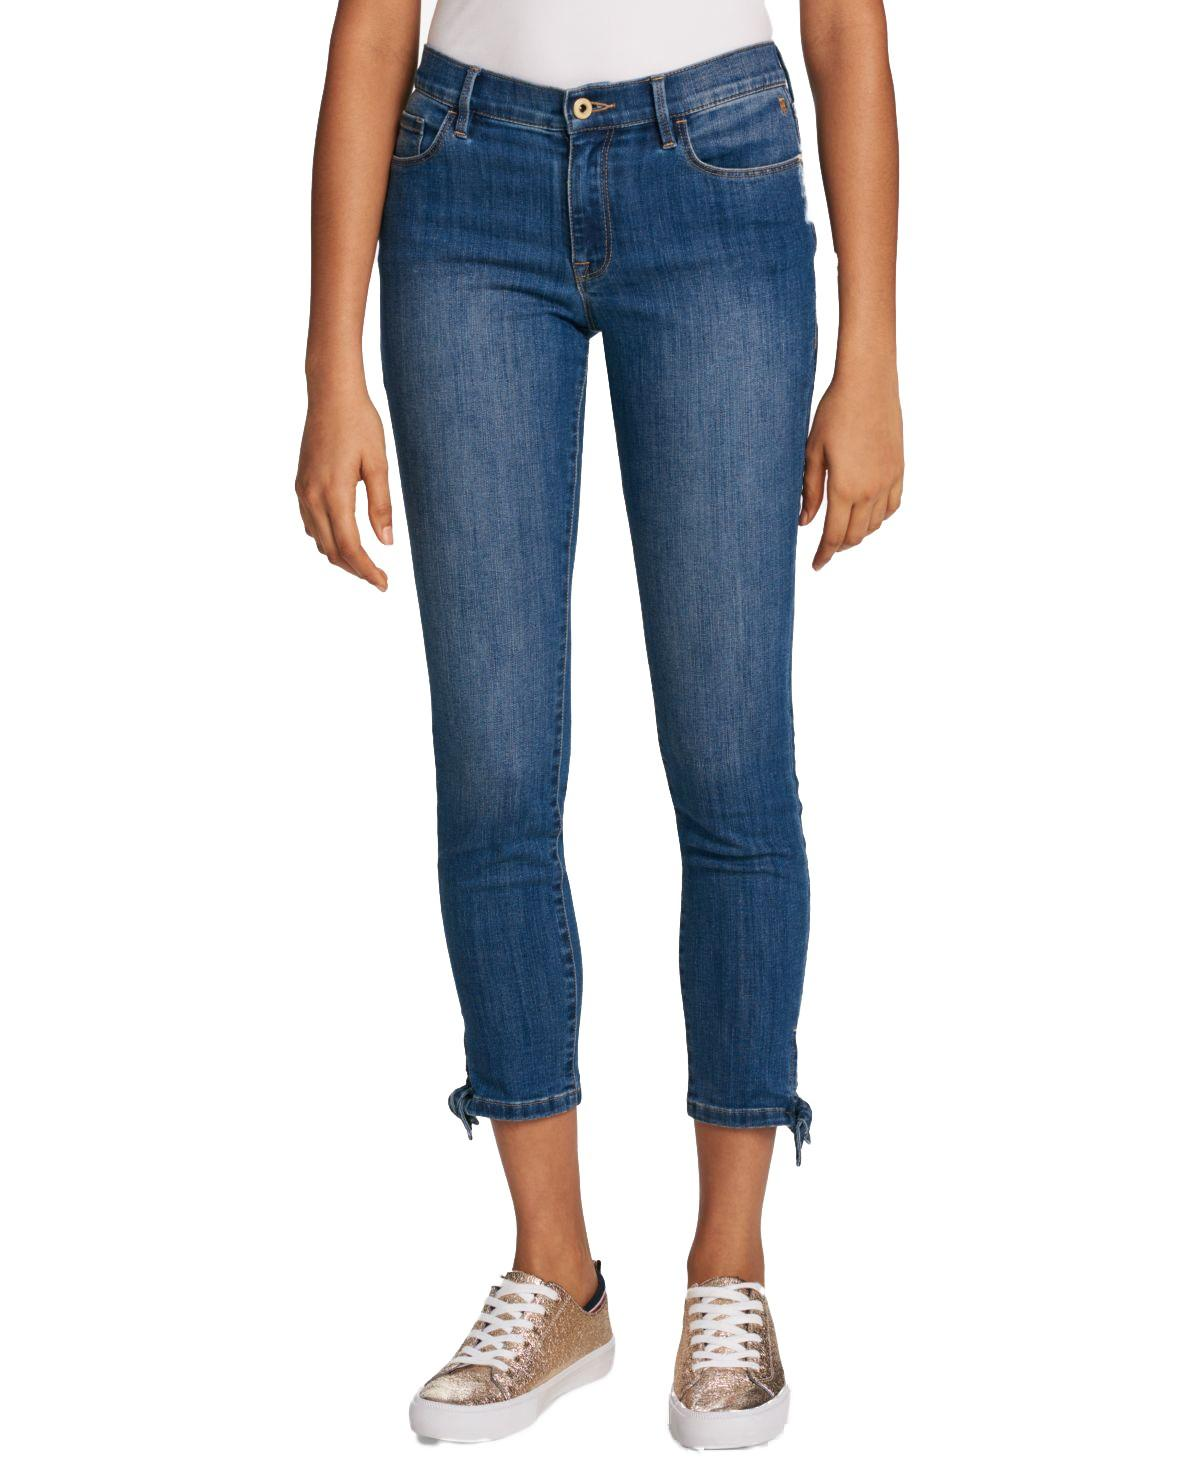 c504c08bd Lyst - Tommy Hilfiger Tie-ankle Skinny Jeans in Blue